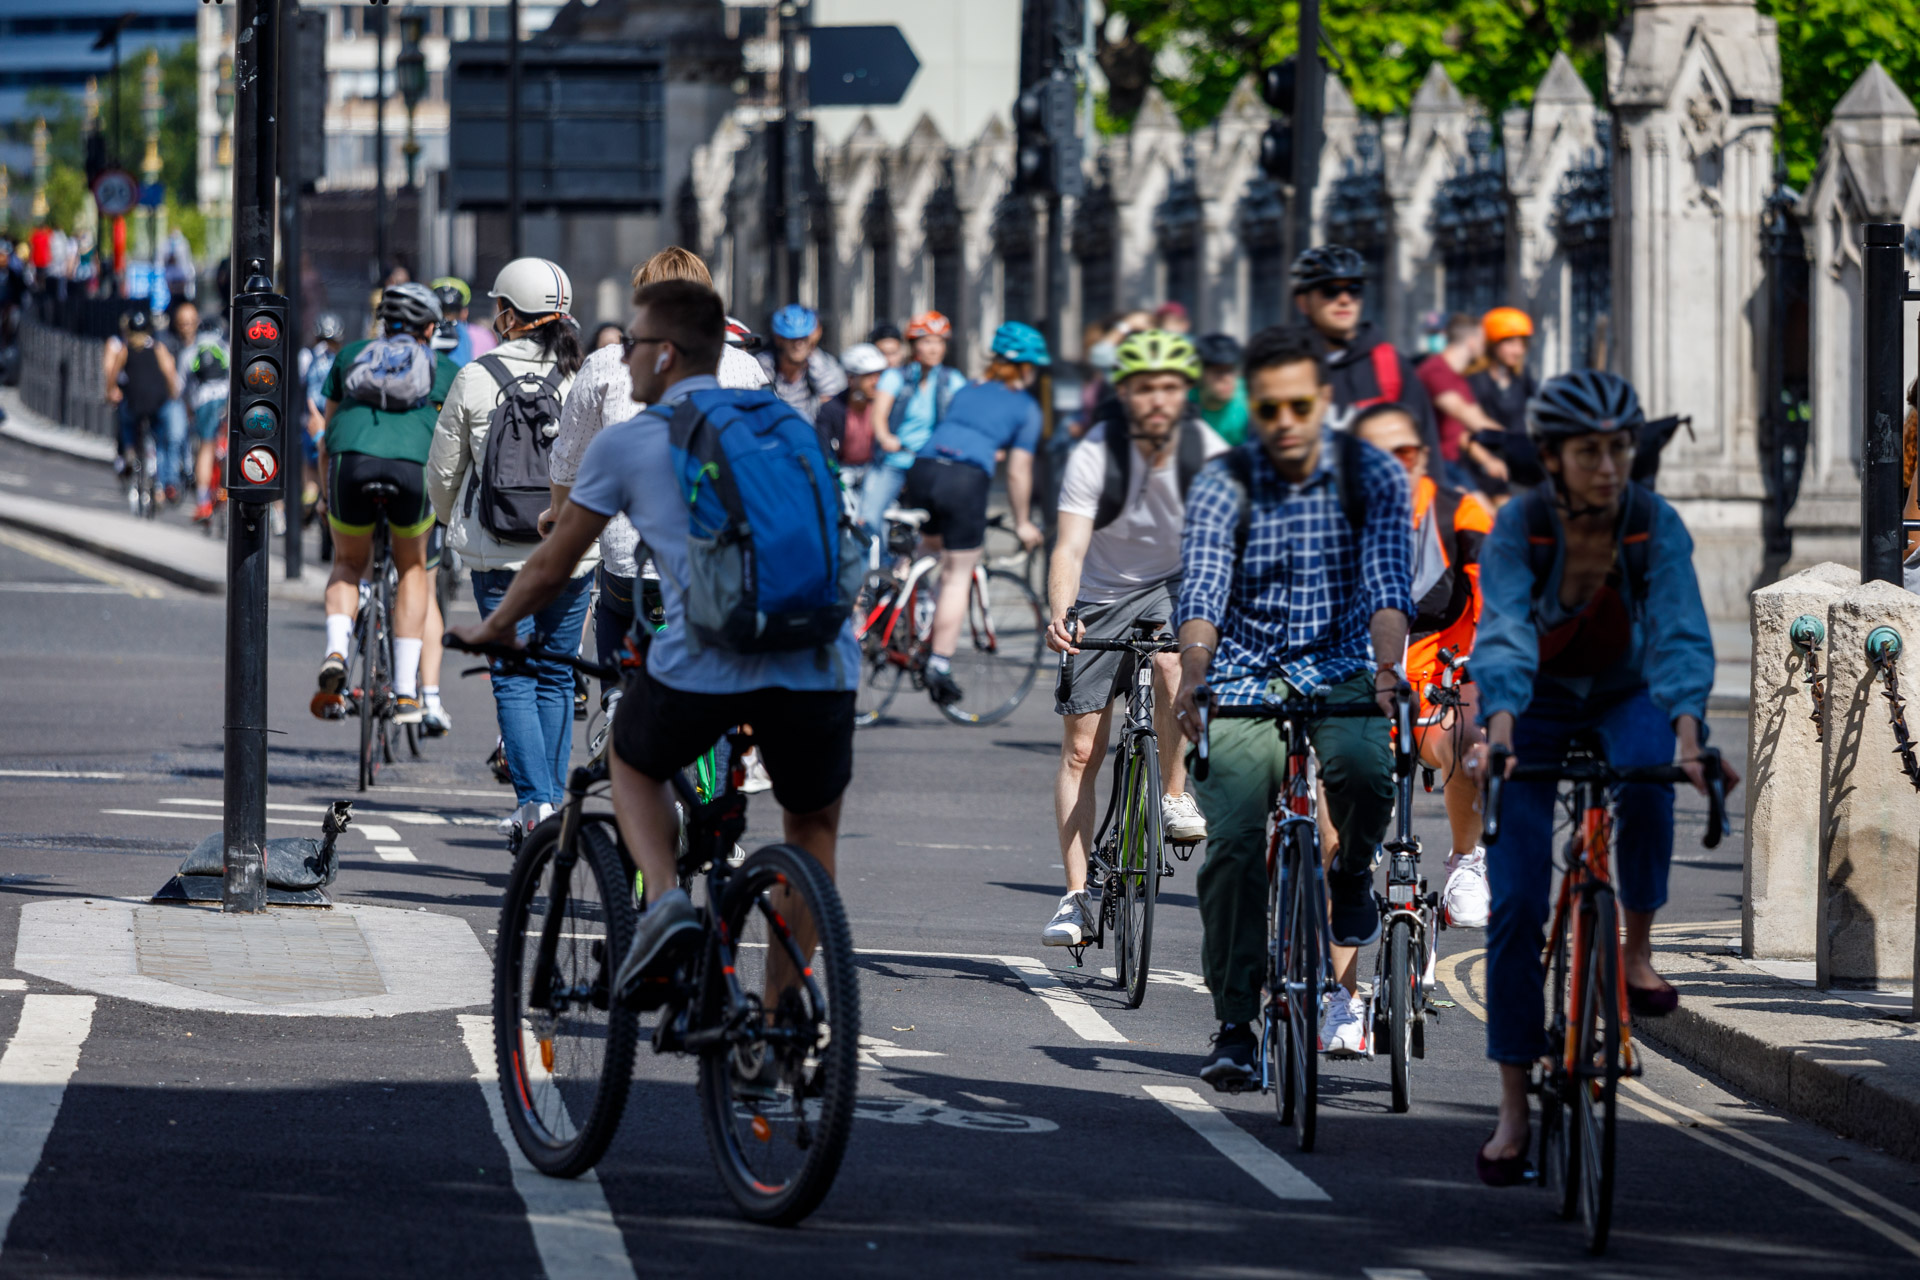 People riding bikes on a separated cycle lane